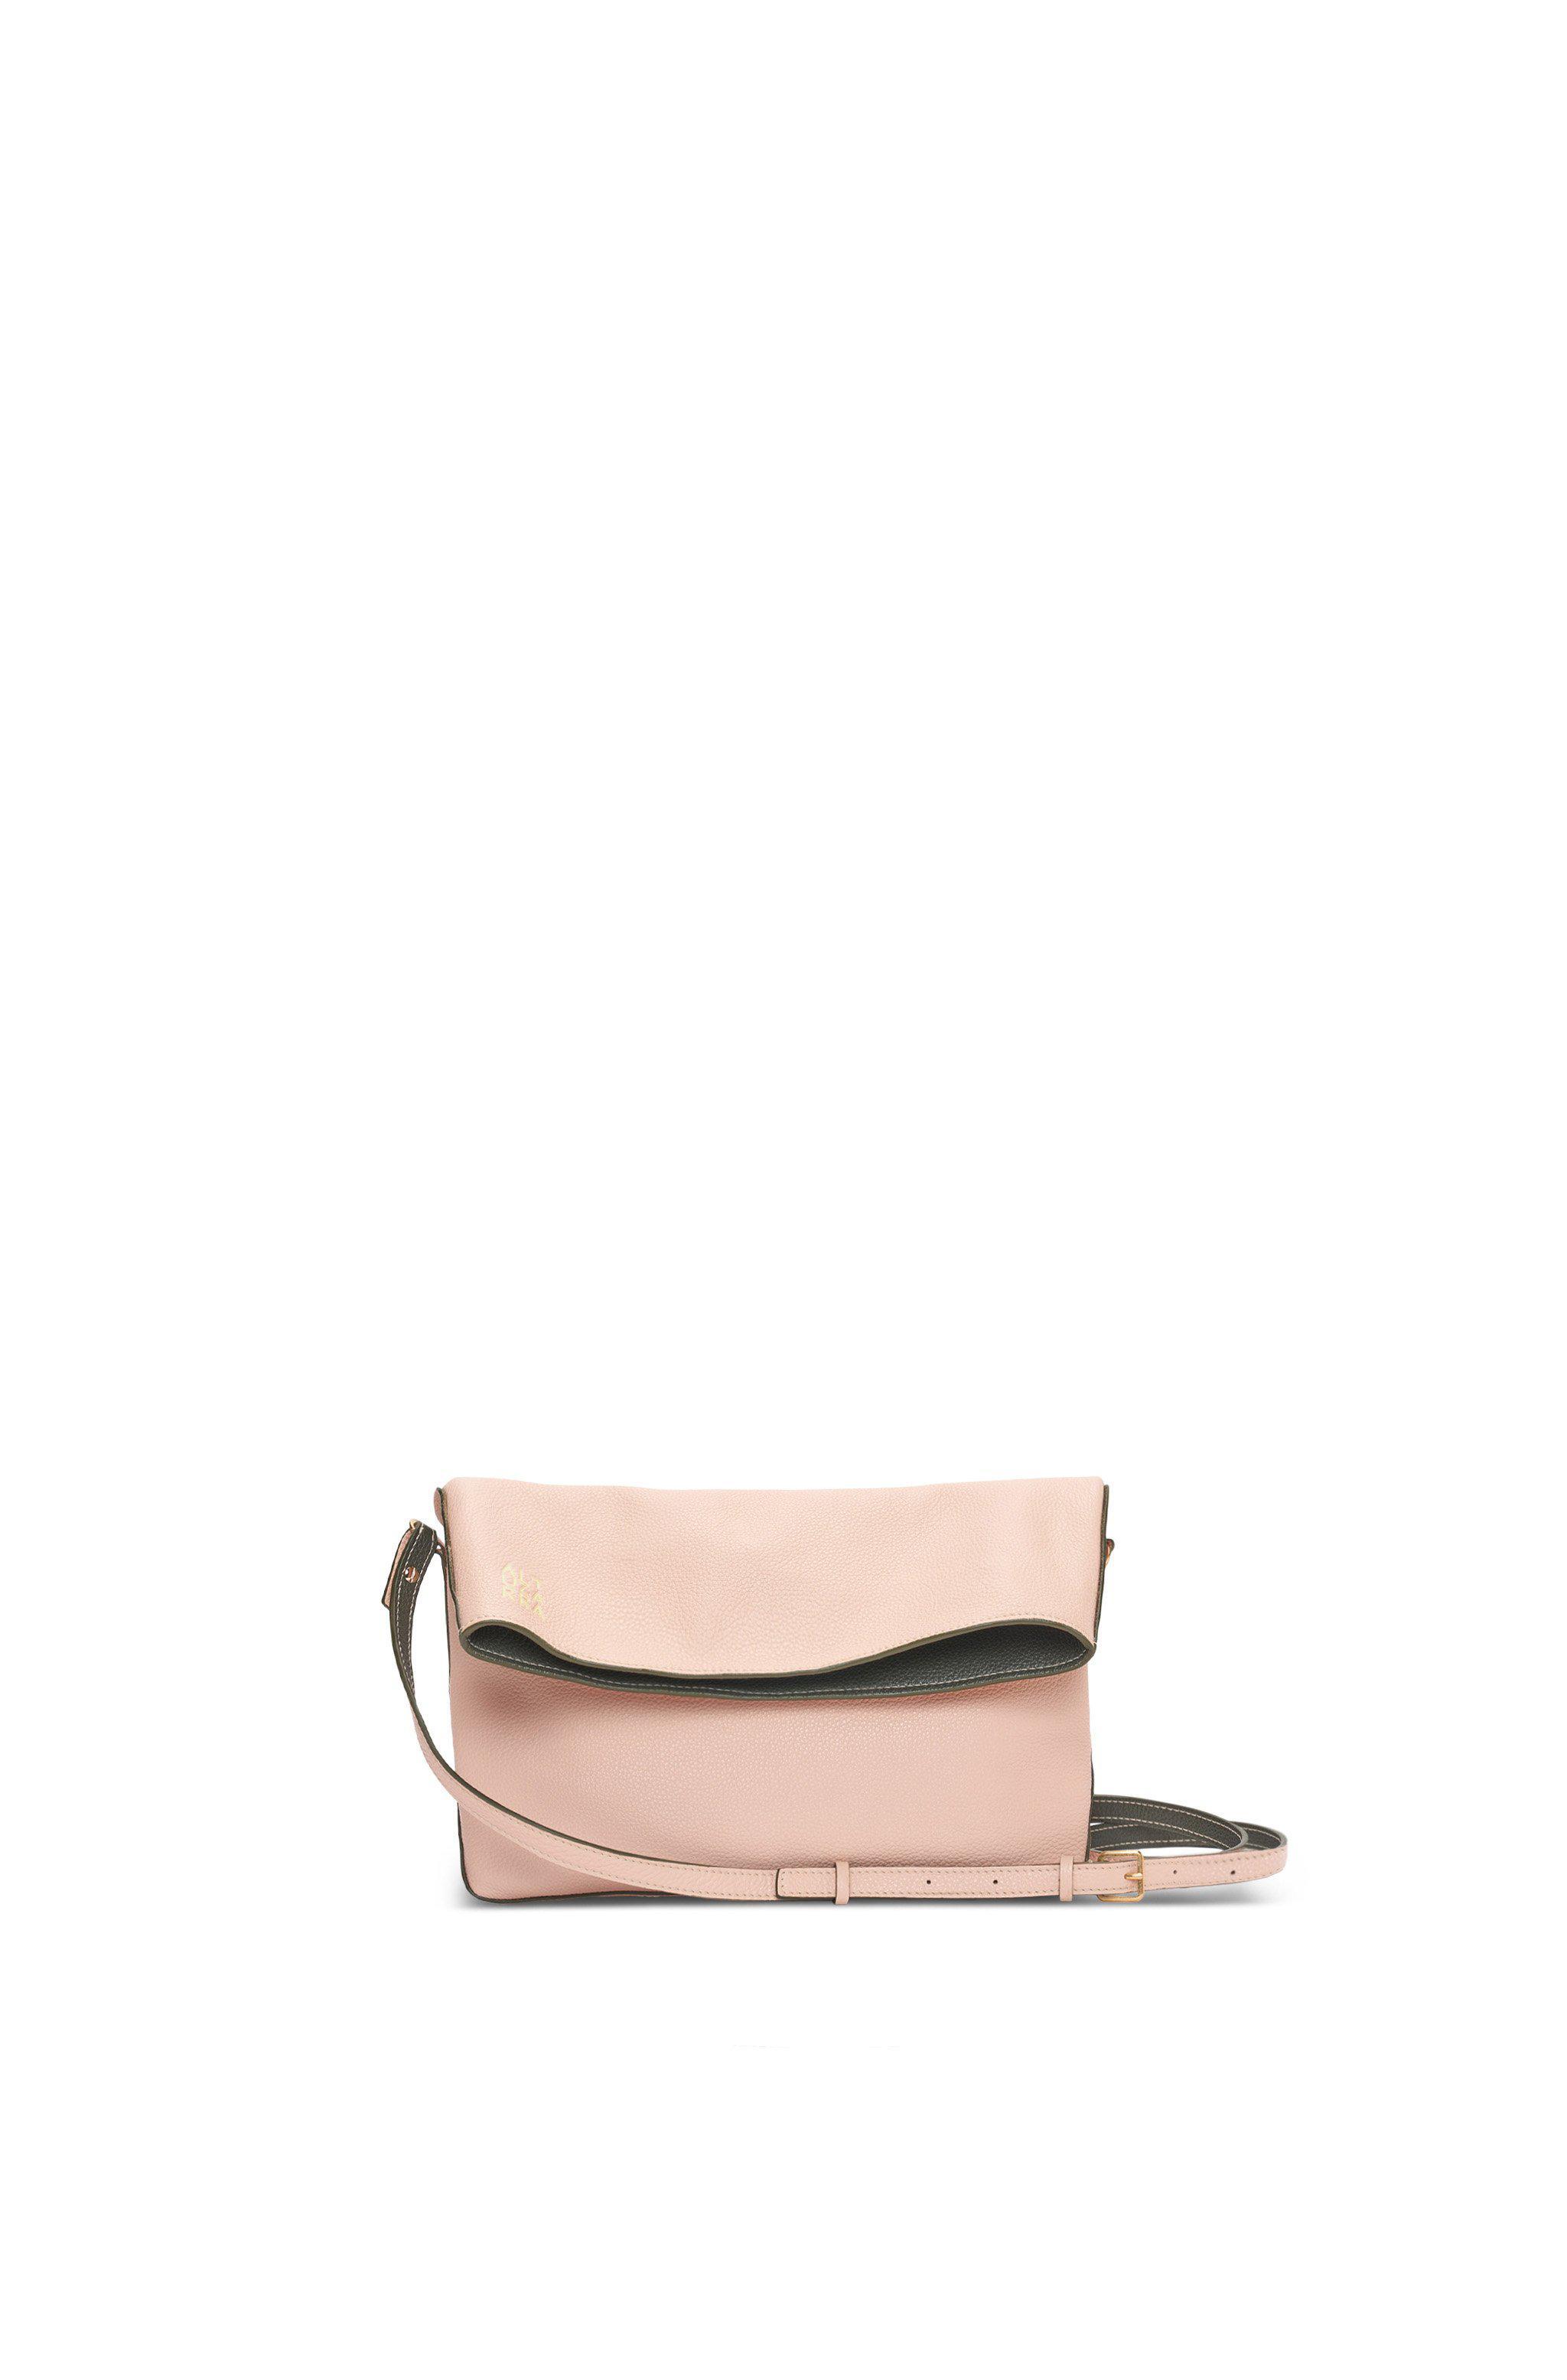 'Duo' Reversible Clutch Small